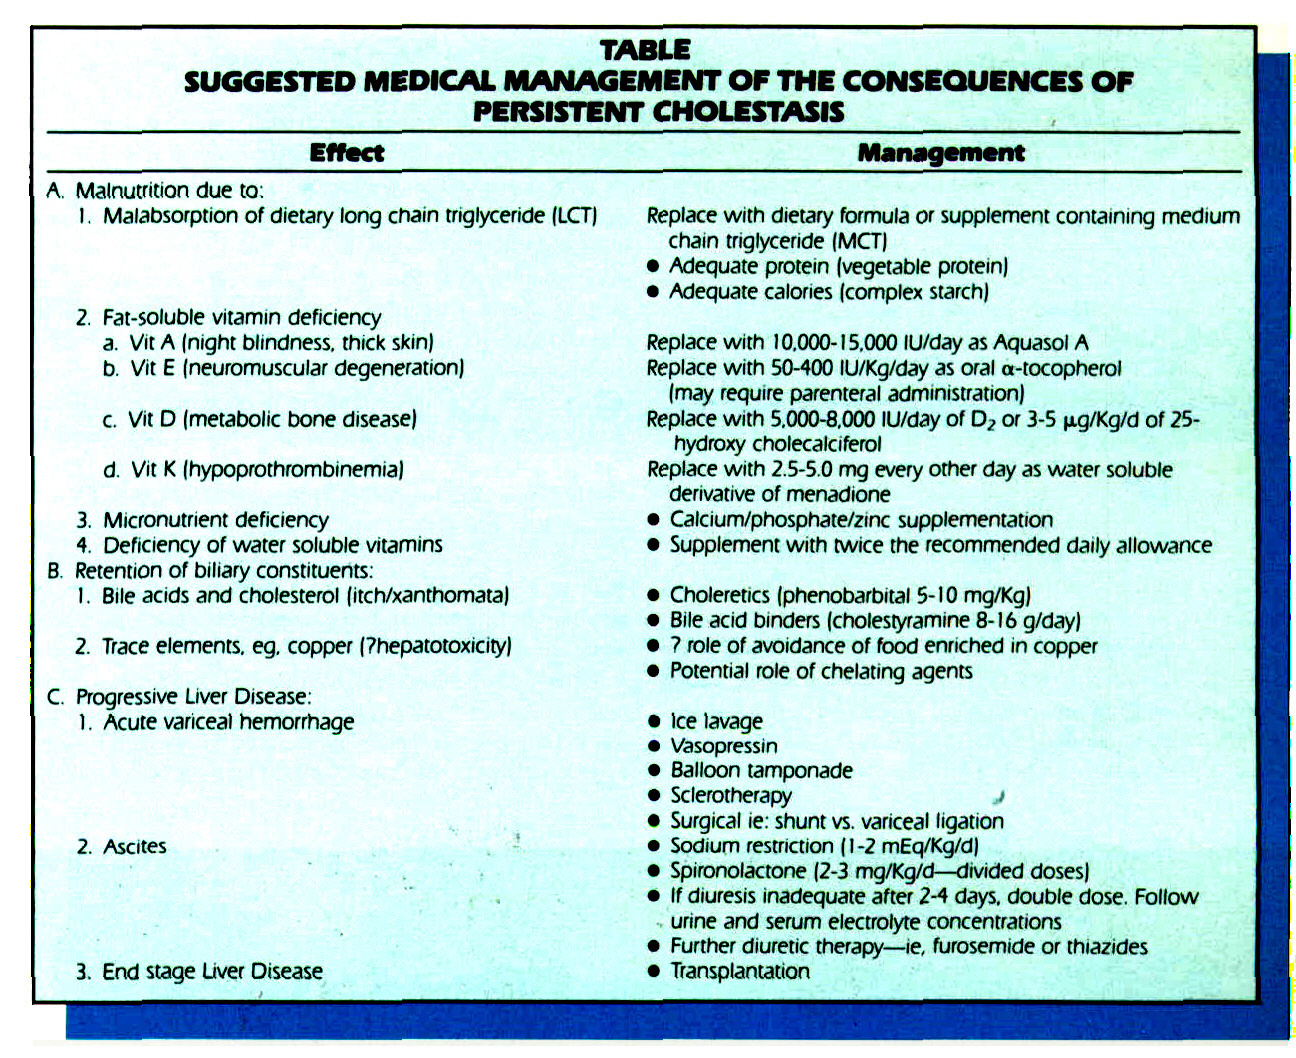 TABLESUGGESTED MEDICAL MANAGEMENT OF THE CONSEQUENCES OF PERSISTENT CHOLESTASIS